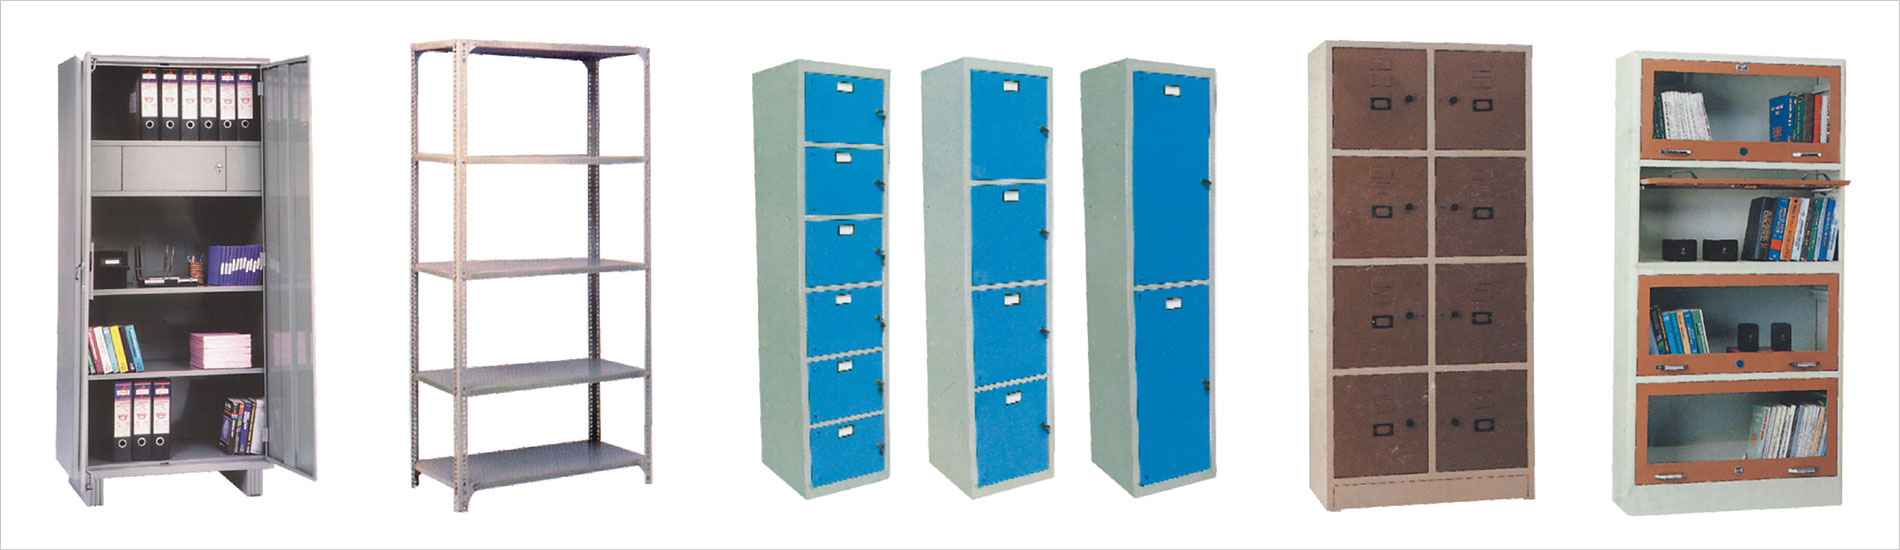 Metal Storage Furniture in Delhi NCR, India